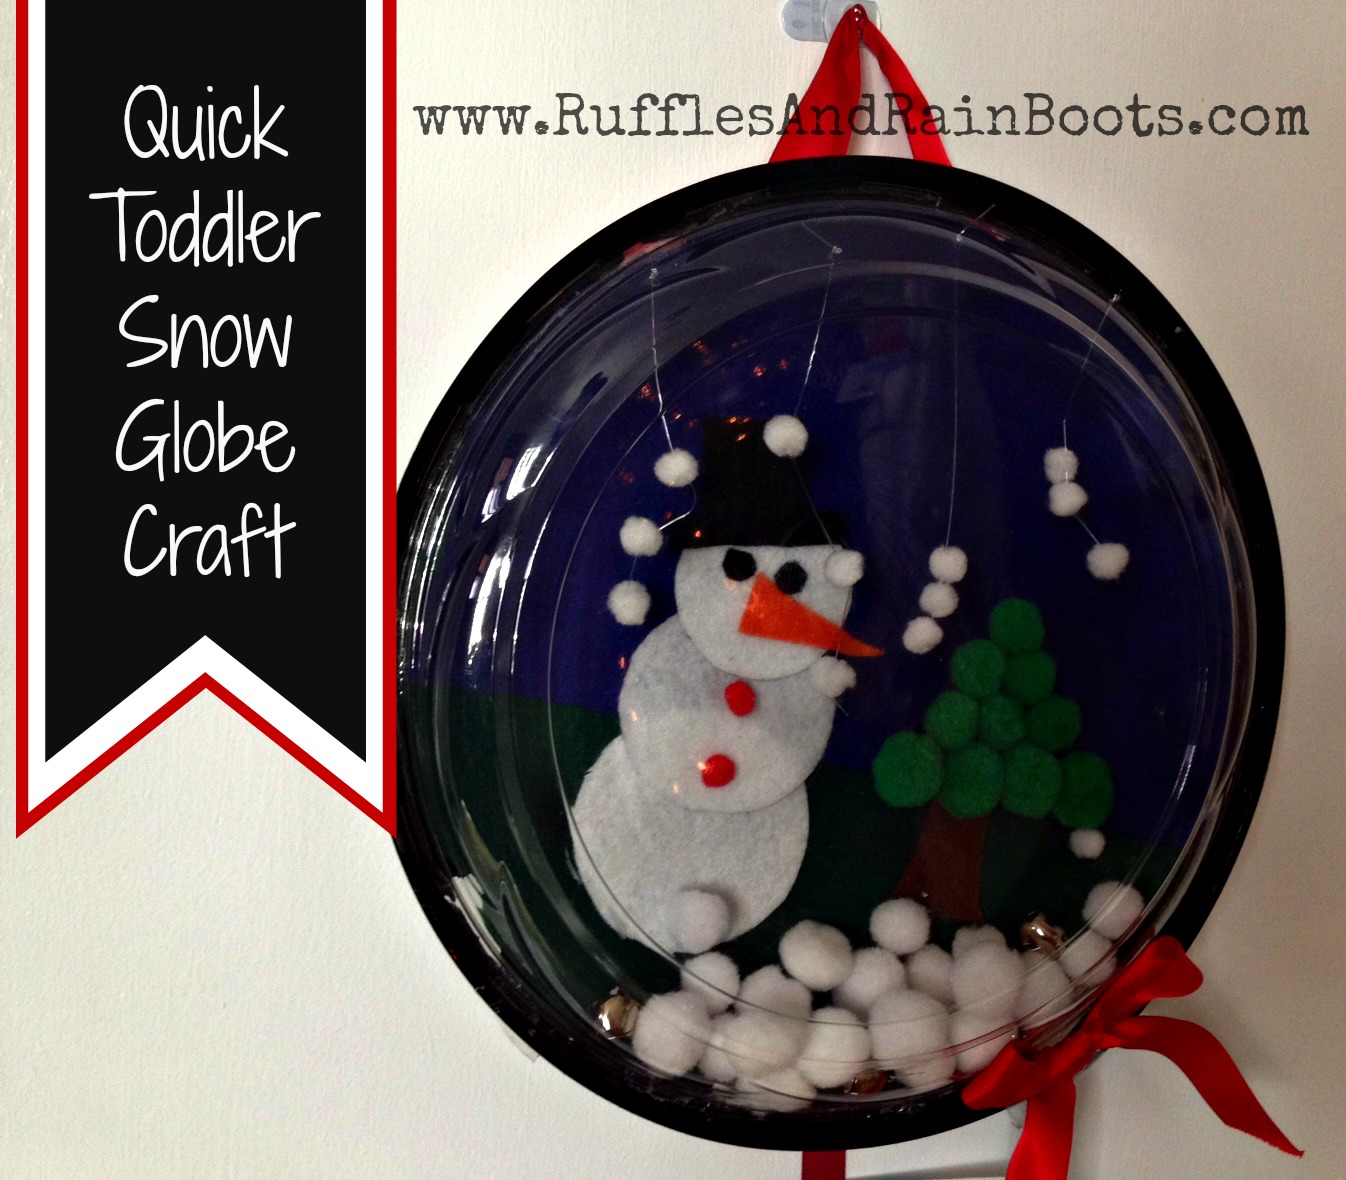 Make a Snow Globe Craft with the Kids from Recycled Materials!